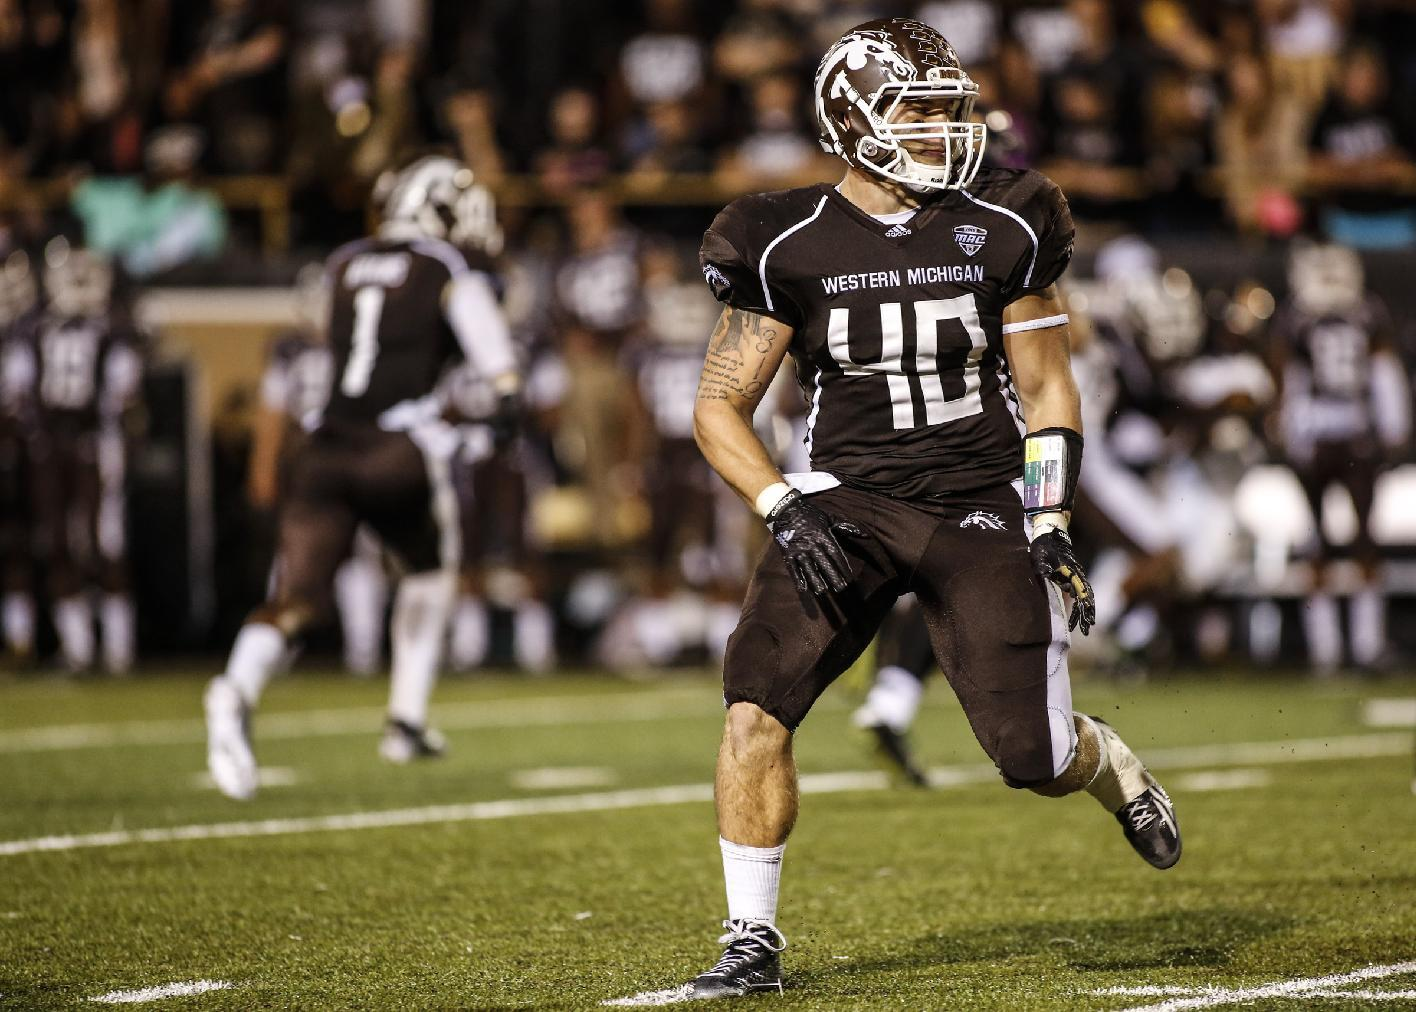 Western Michigan walk-on Grant DePalma awarded scholarship (Video)